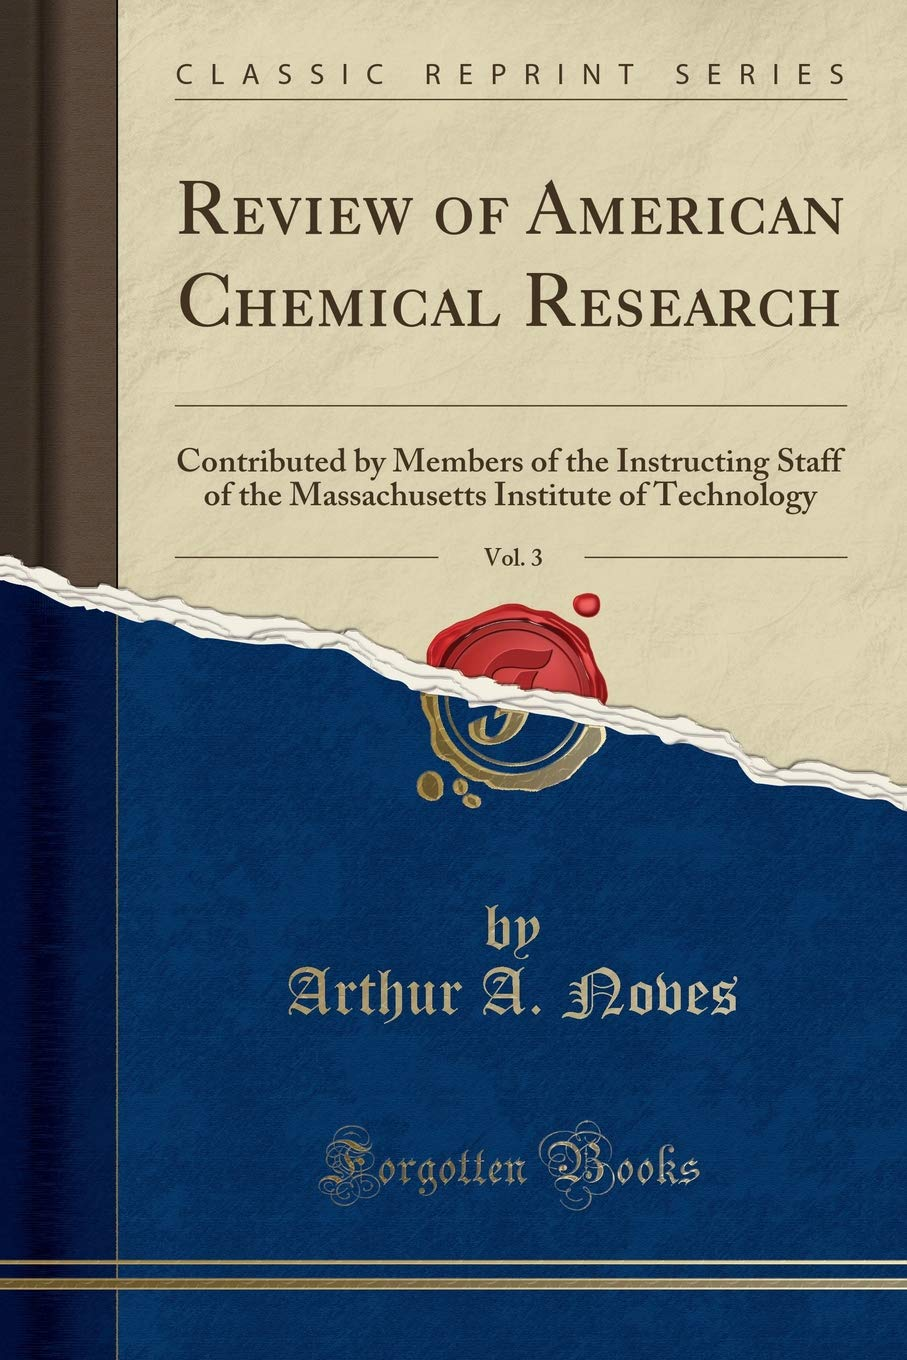 Review of American Chemical Research, Vol. 3: Contributed by Members of the Instructing Staff of the Massachusetts Institute of Technology (Classic Reprint) pdf